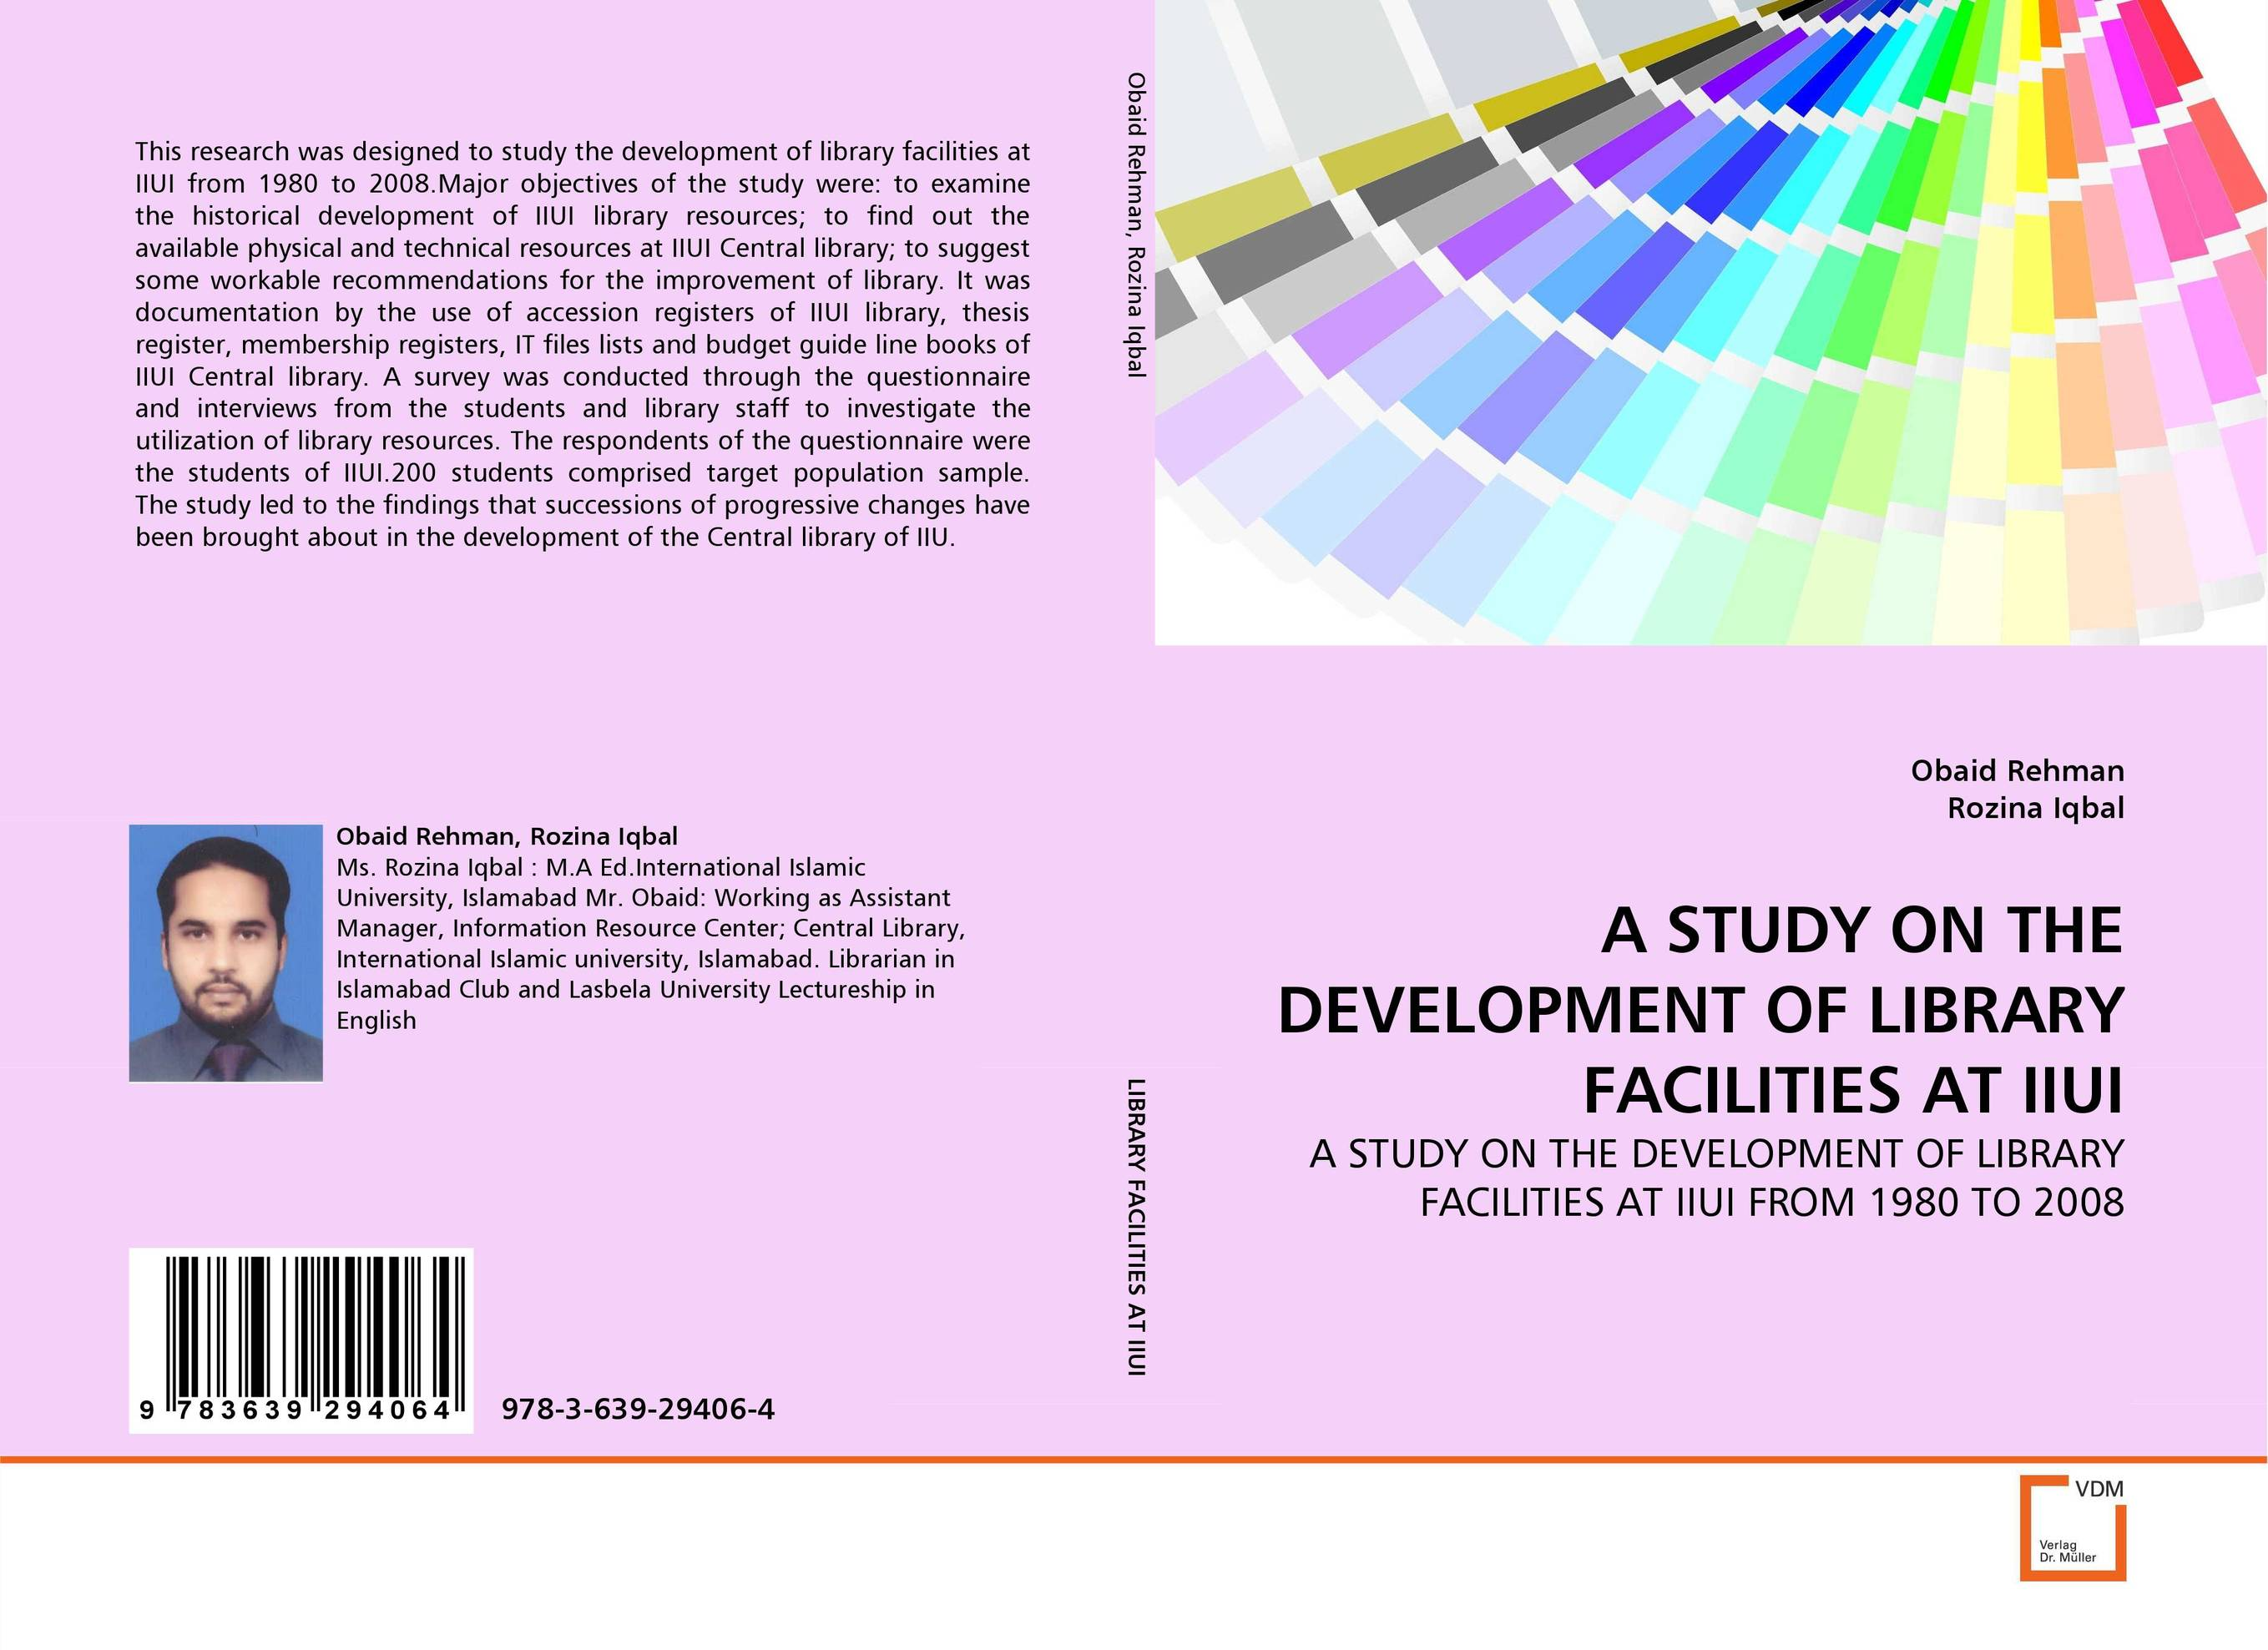 A STUDY ON THE DEVELOPMENT OF LIBRARY FACILITIES AT IIUI the invisible library